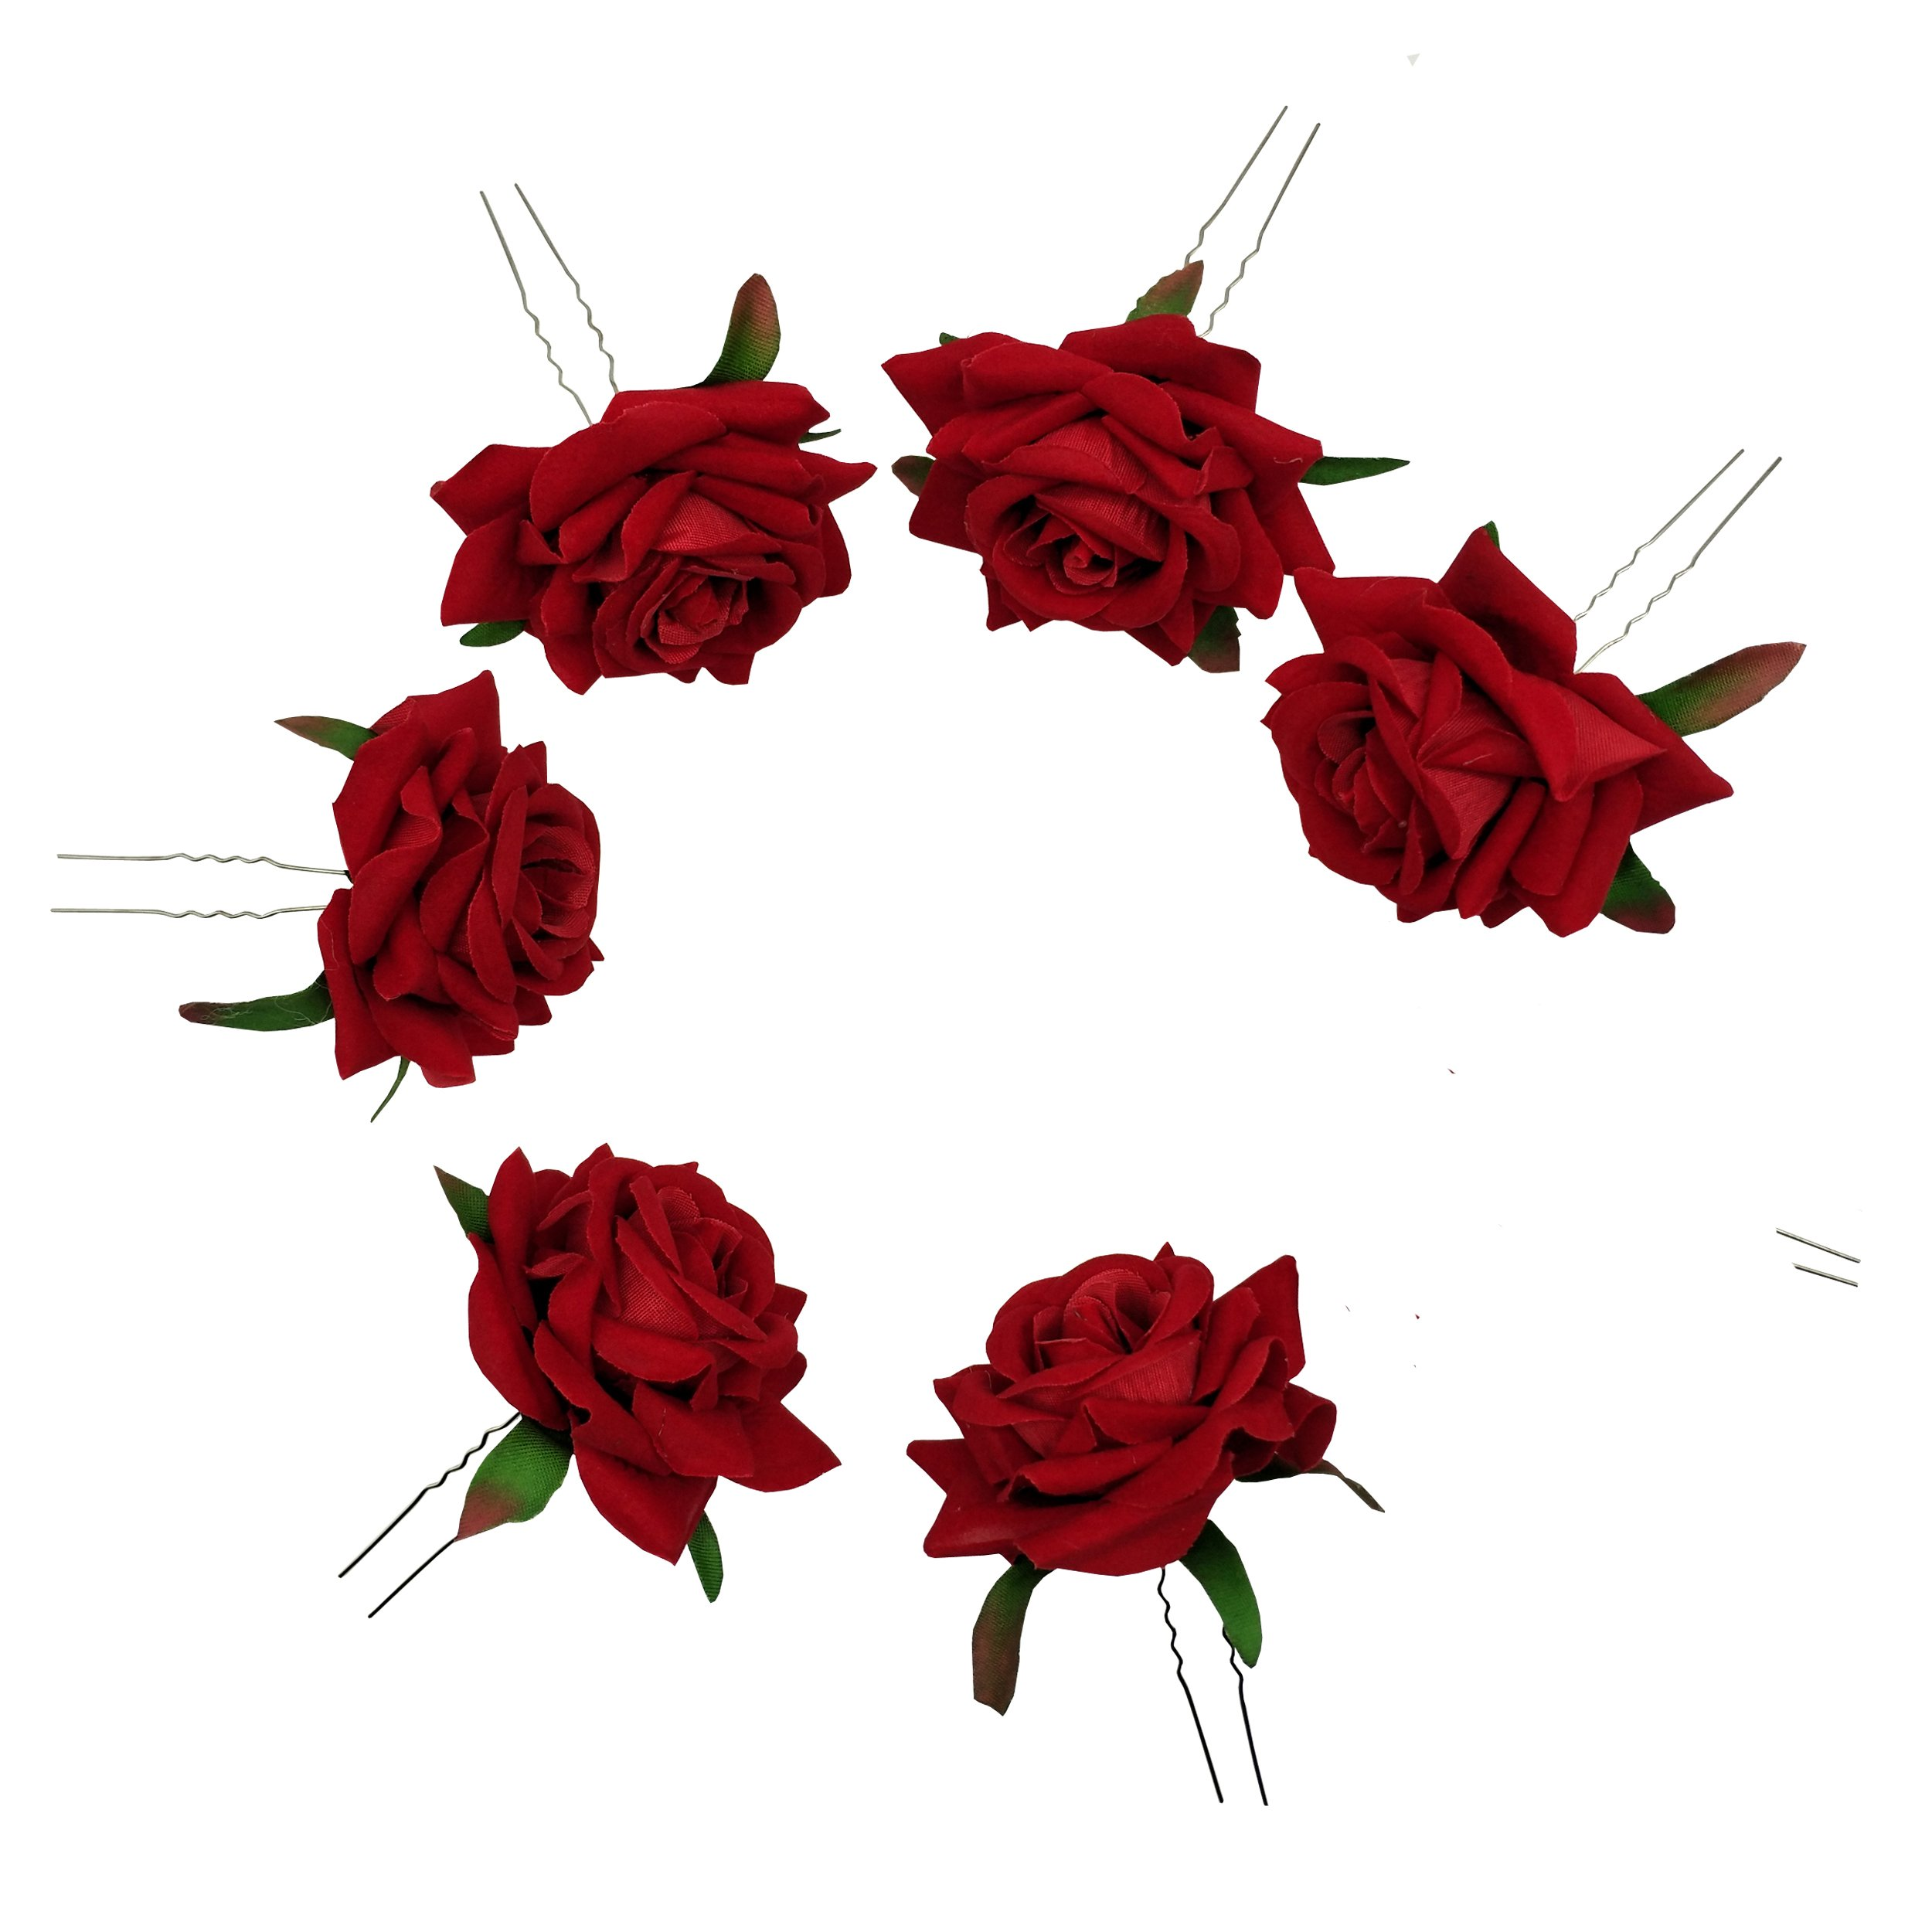 Sanrich 6pcs Rose Flower Hair Pins U Shaped Wedding Hair Clips Photo Shoot Flowers (red)